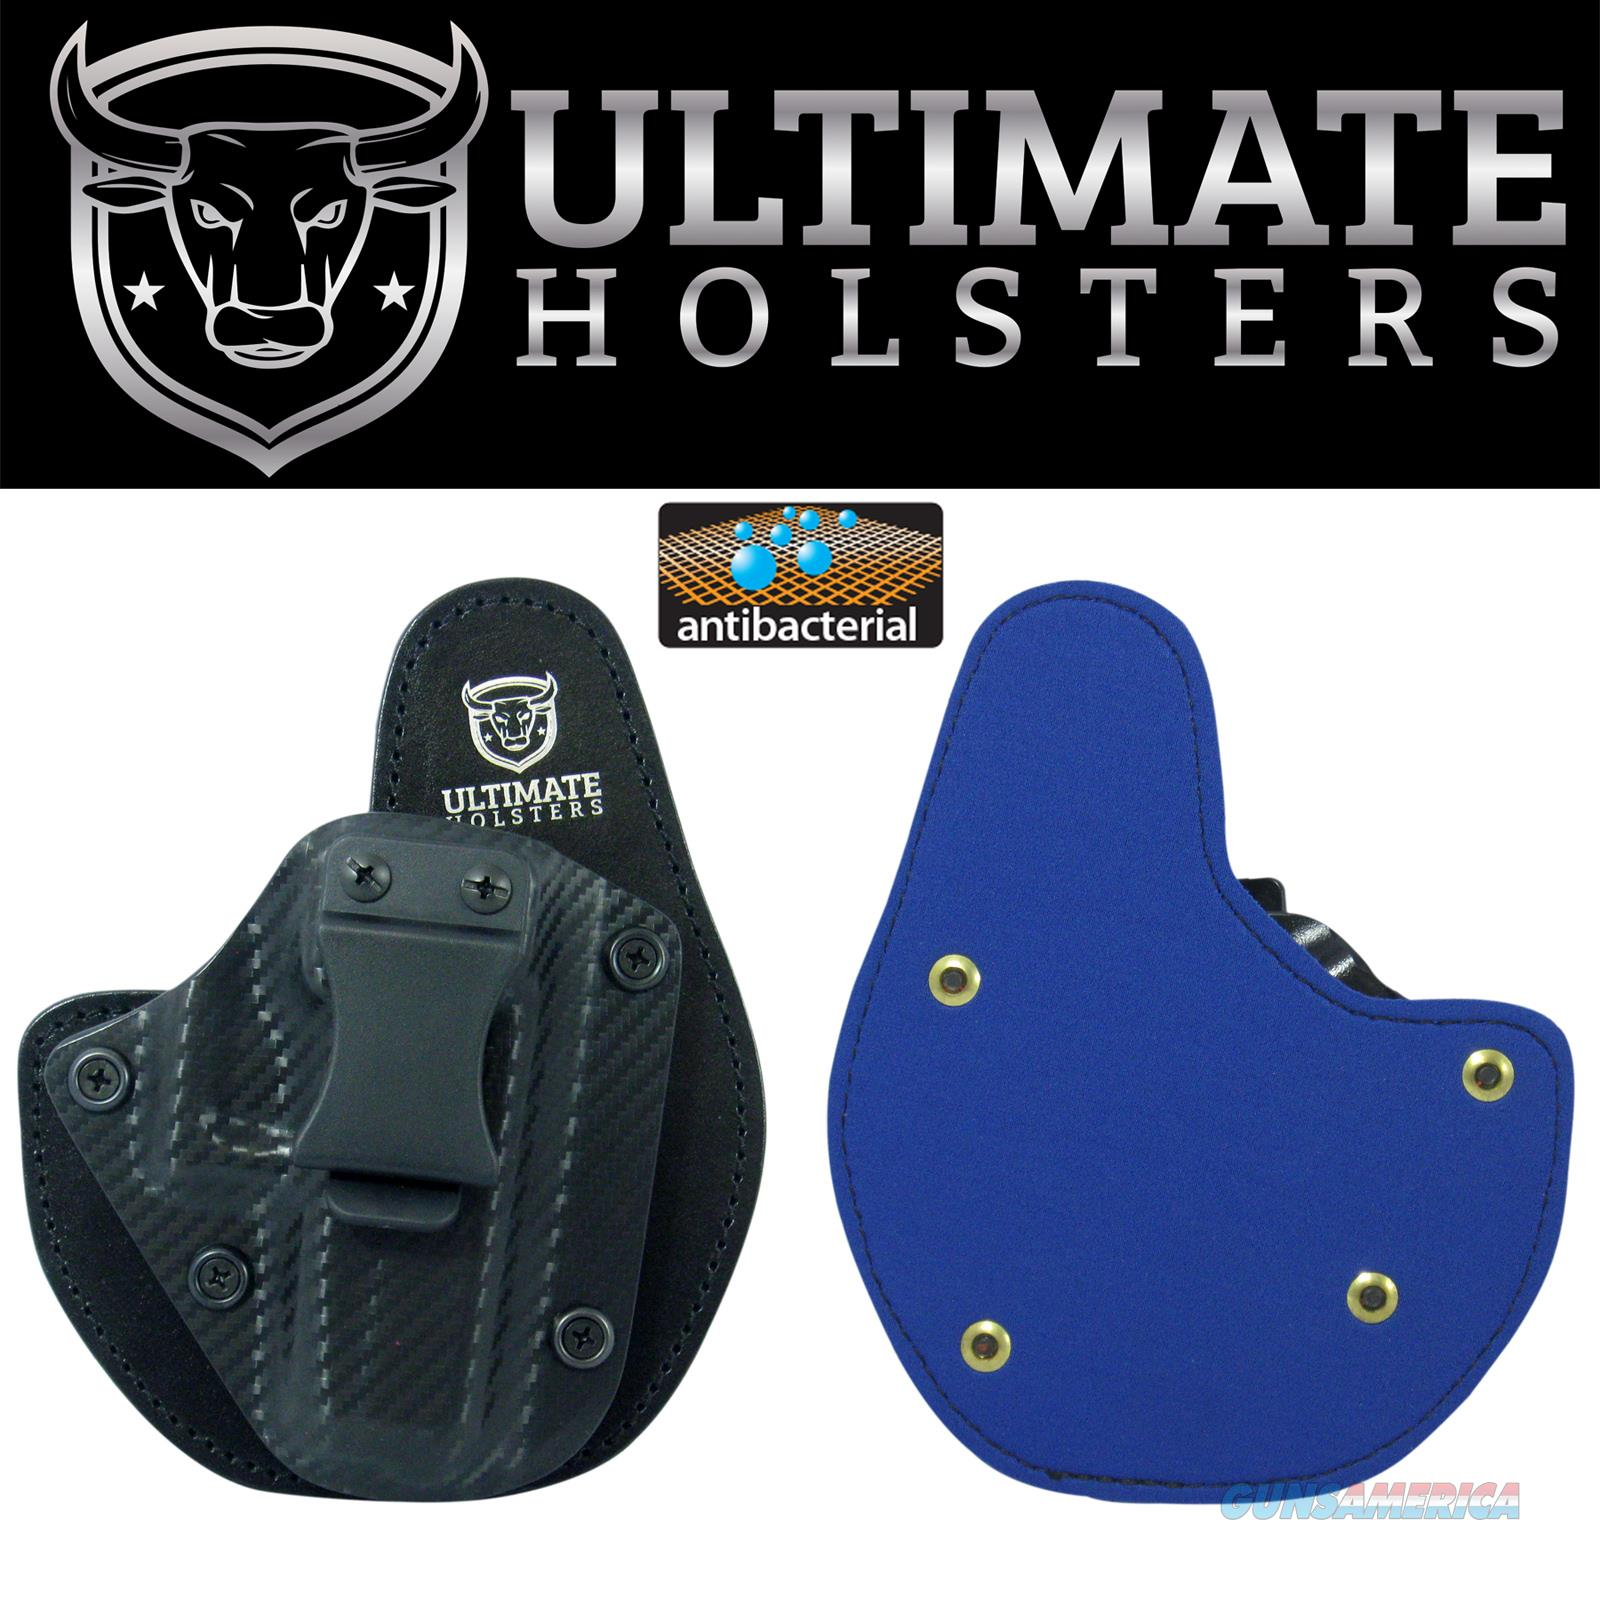 Ruger SR22 Cloud Tuck Rapid Hybrid Holster- Most Comfortable Holster- Antimicrobial Padding   Non-Guns > Holsters and Gunleather > Concealed Carry